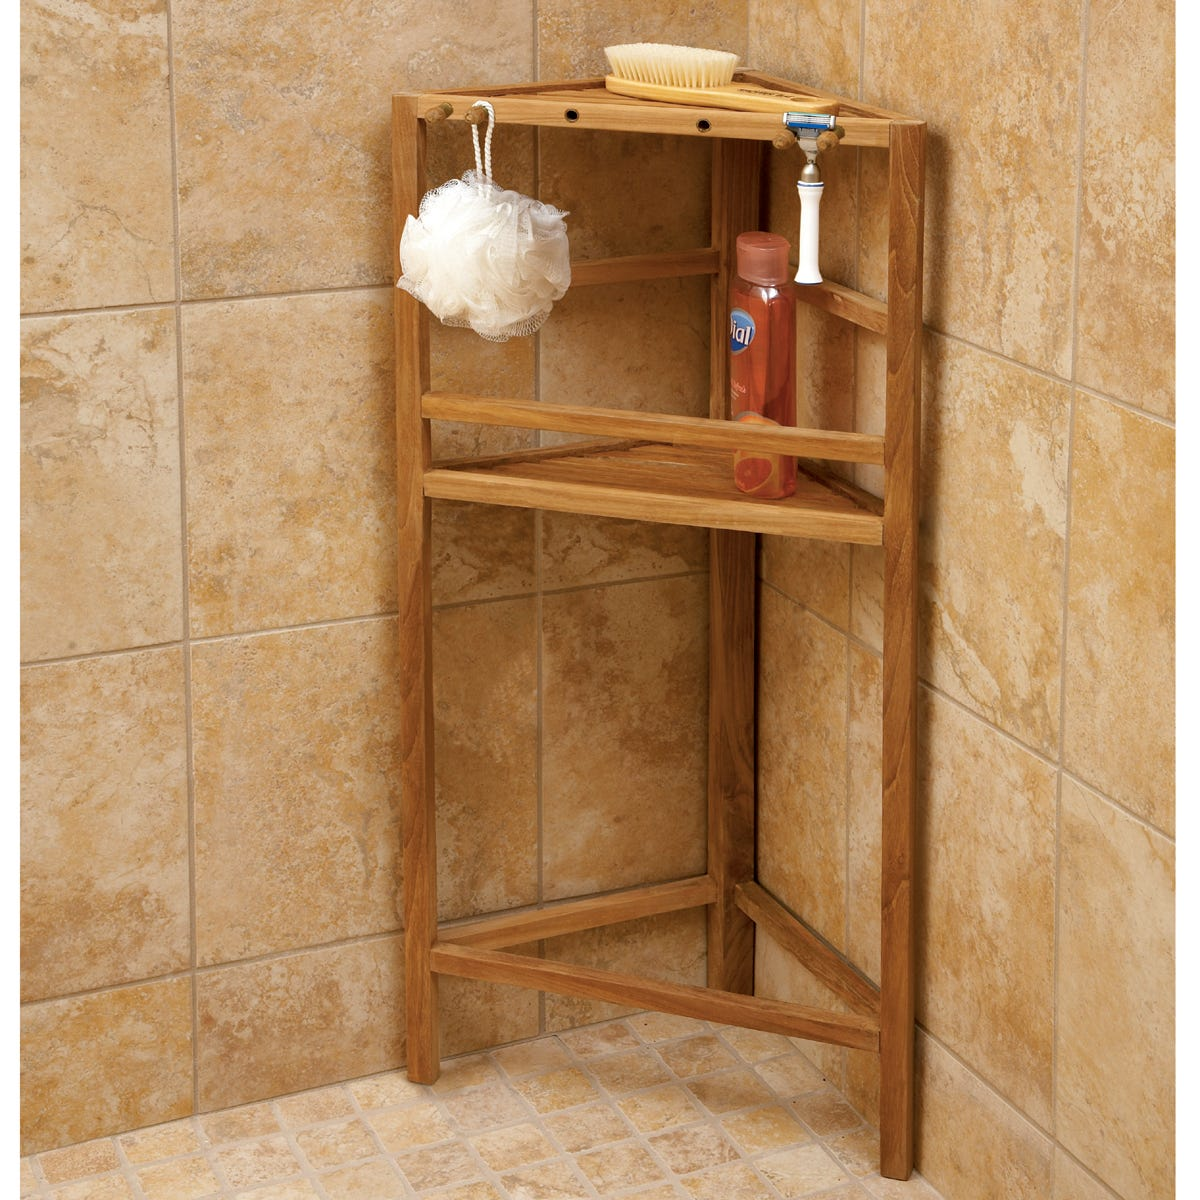 Corner Stool For Shower